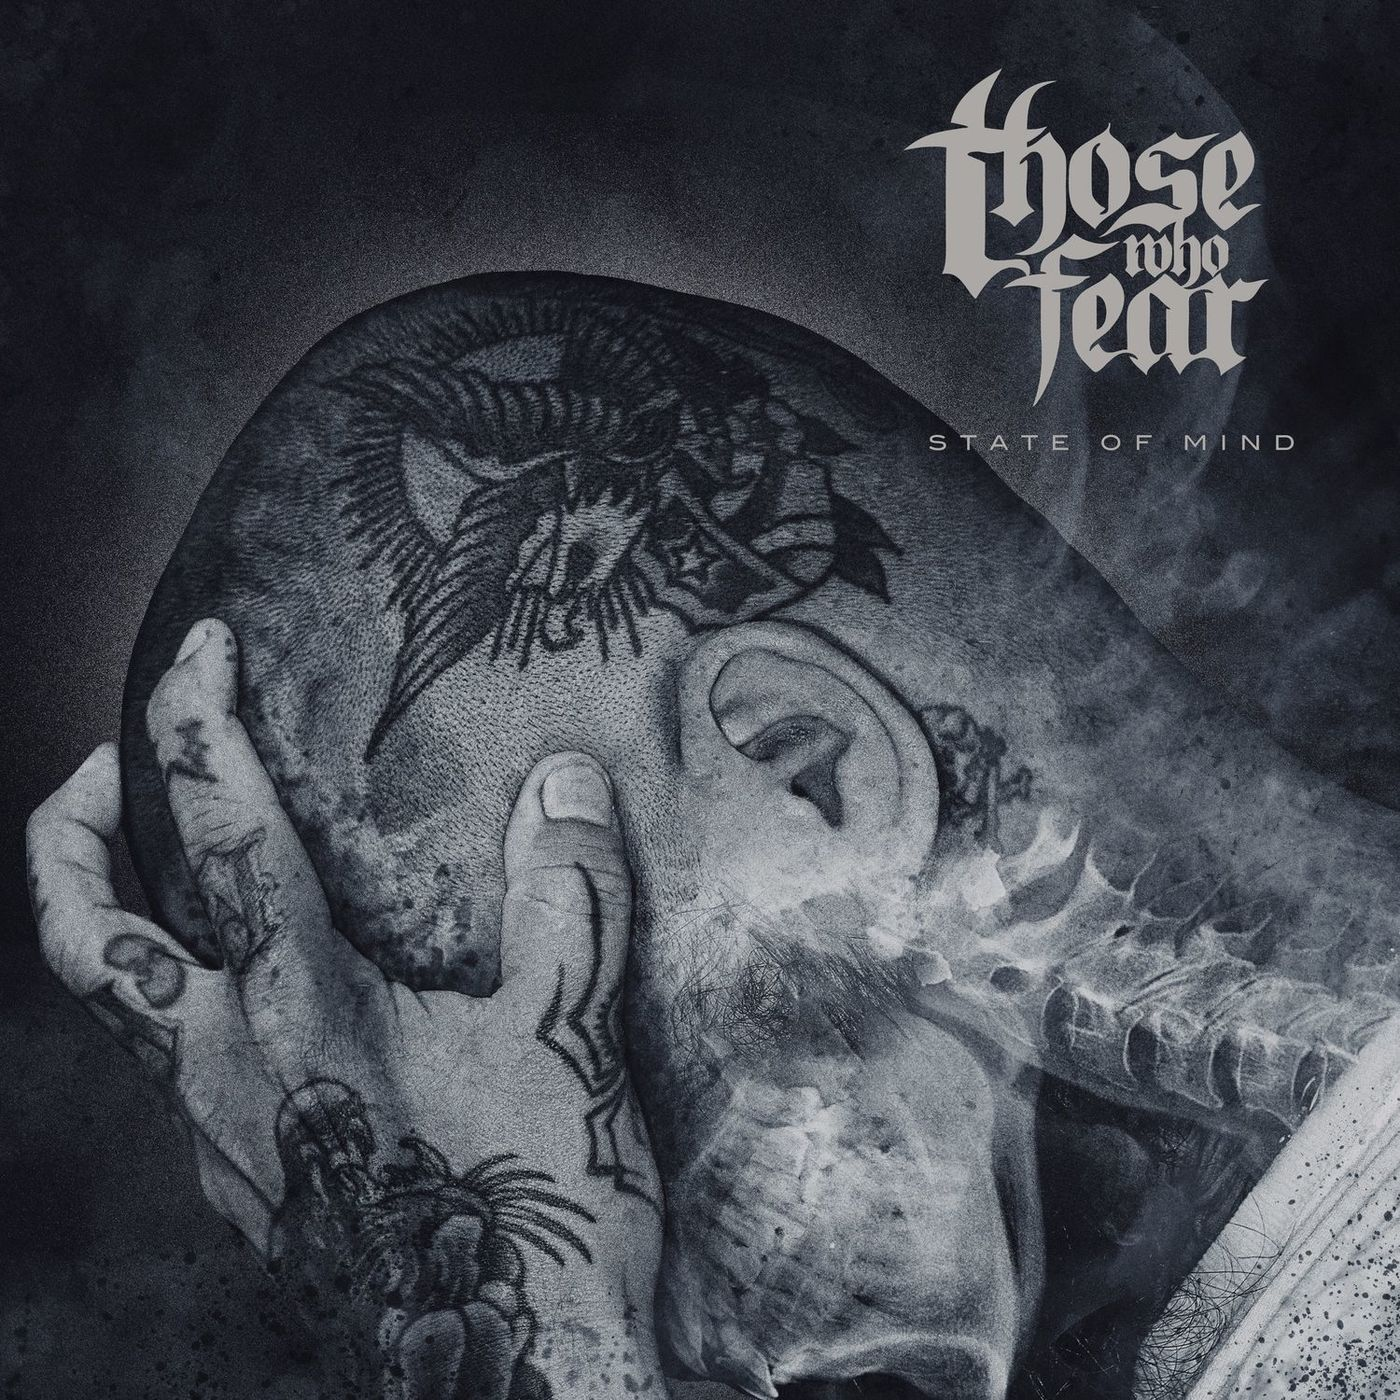 Those Who Fear - Lost [single] (2016)